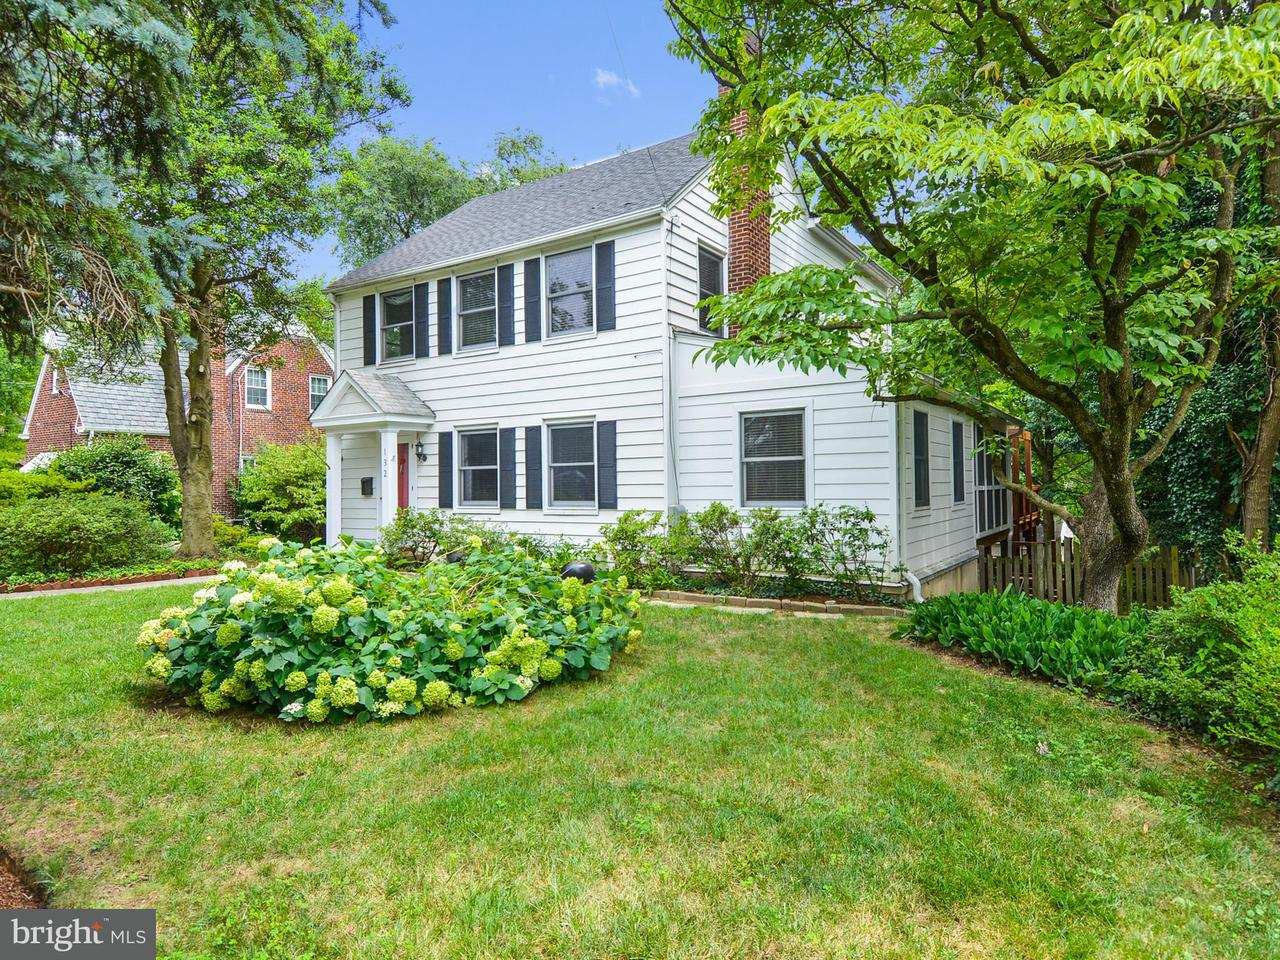 Single Family Home for Sale at 132 ADAMS ST S 132 ADAMS ST S Rockville, Maryland 20850 United States